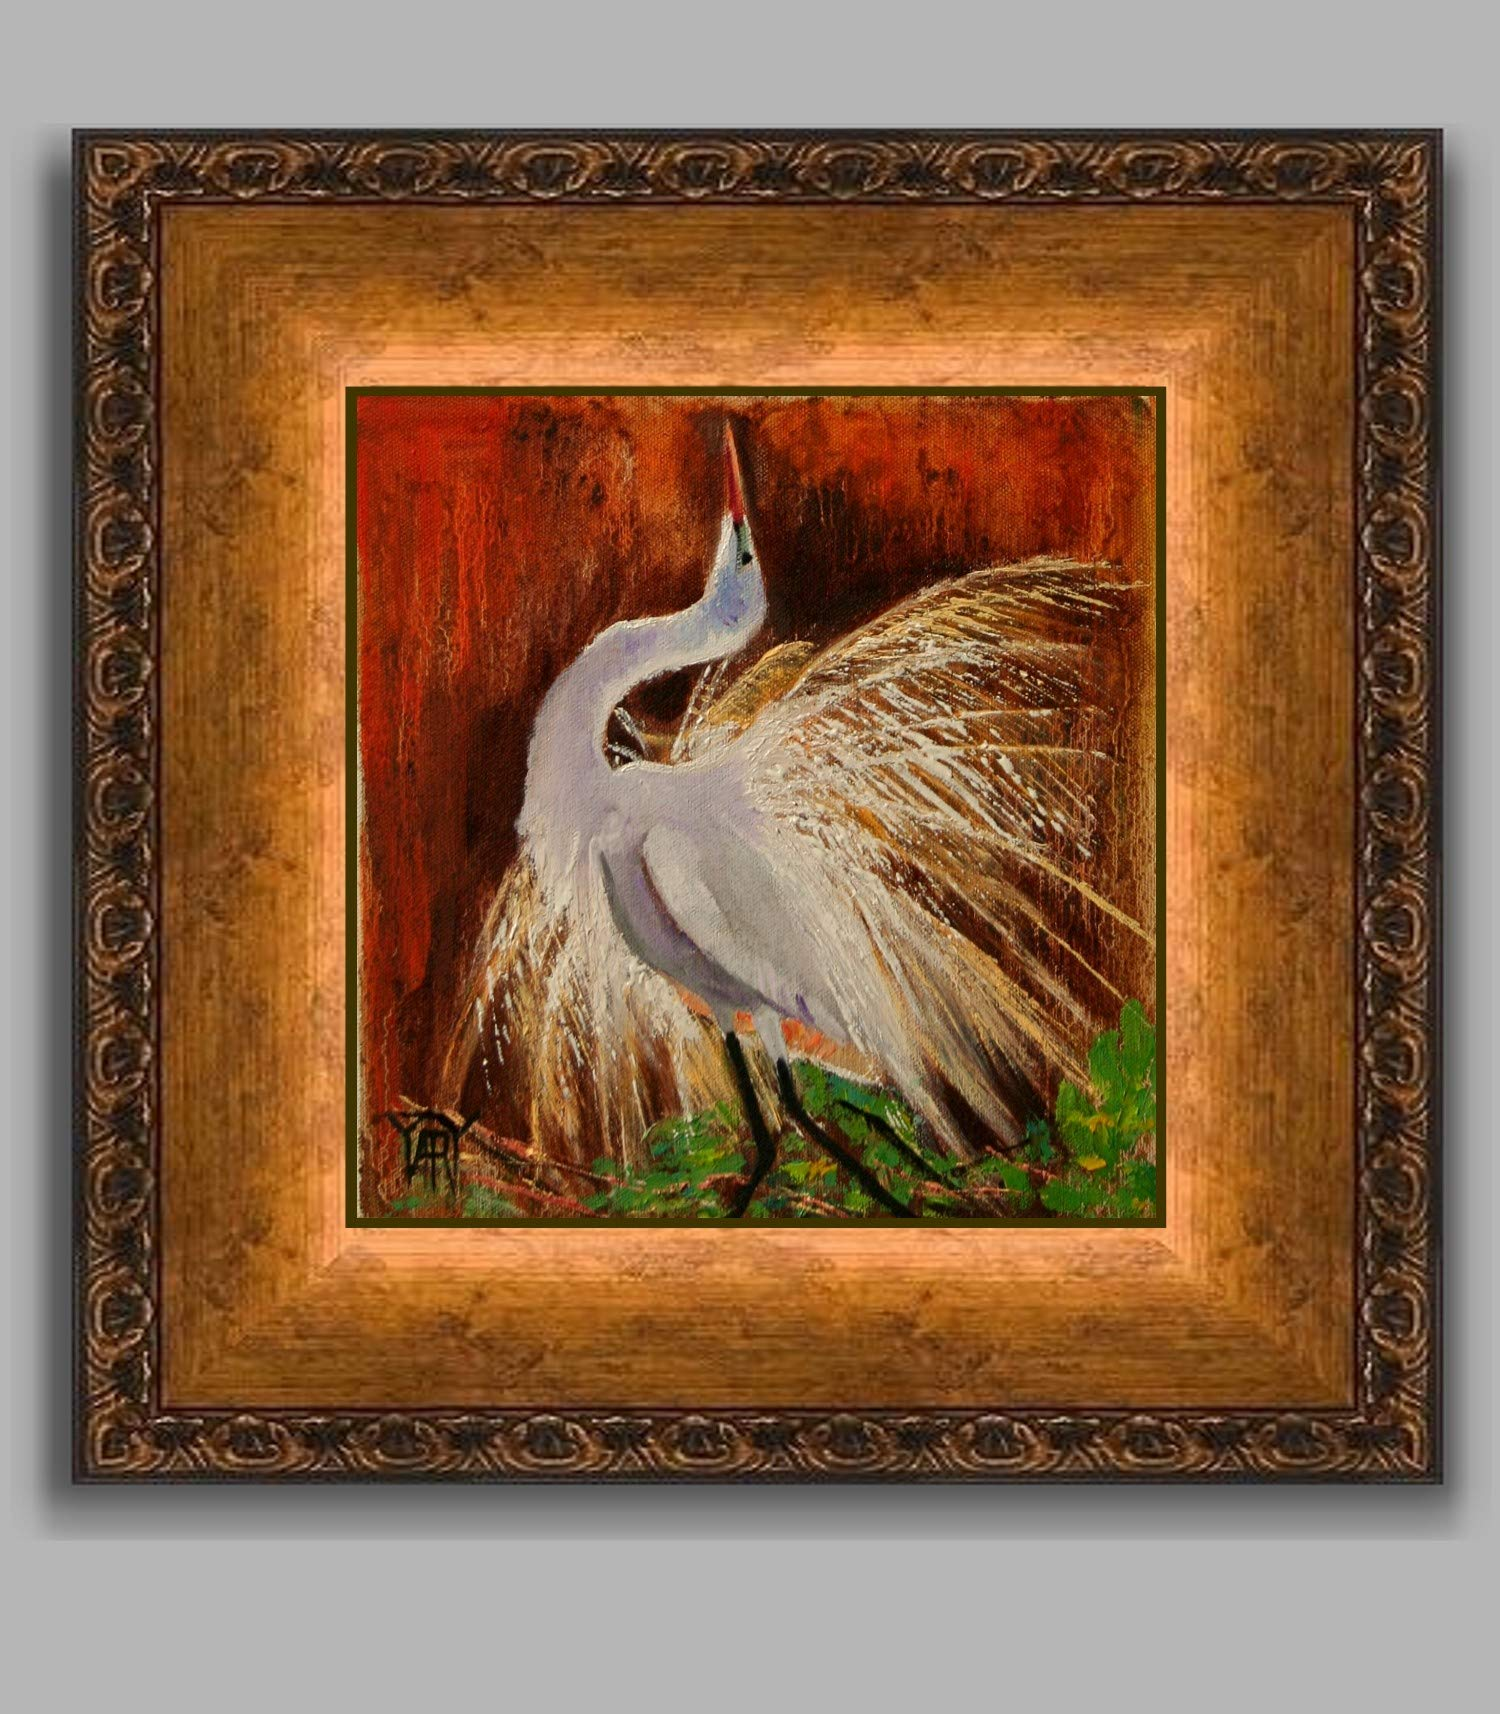 The Mating Dance CHRISTMAS SALE small wildlife nature work by internationally renown painter Yary Dluhos